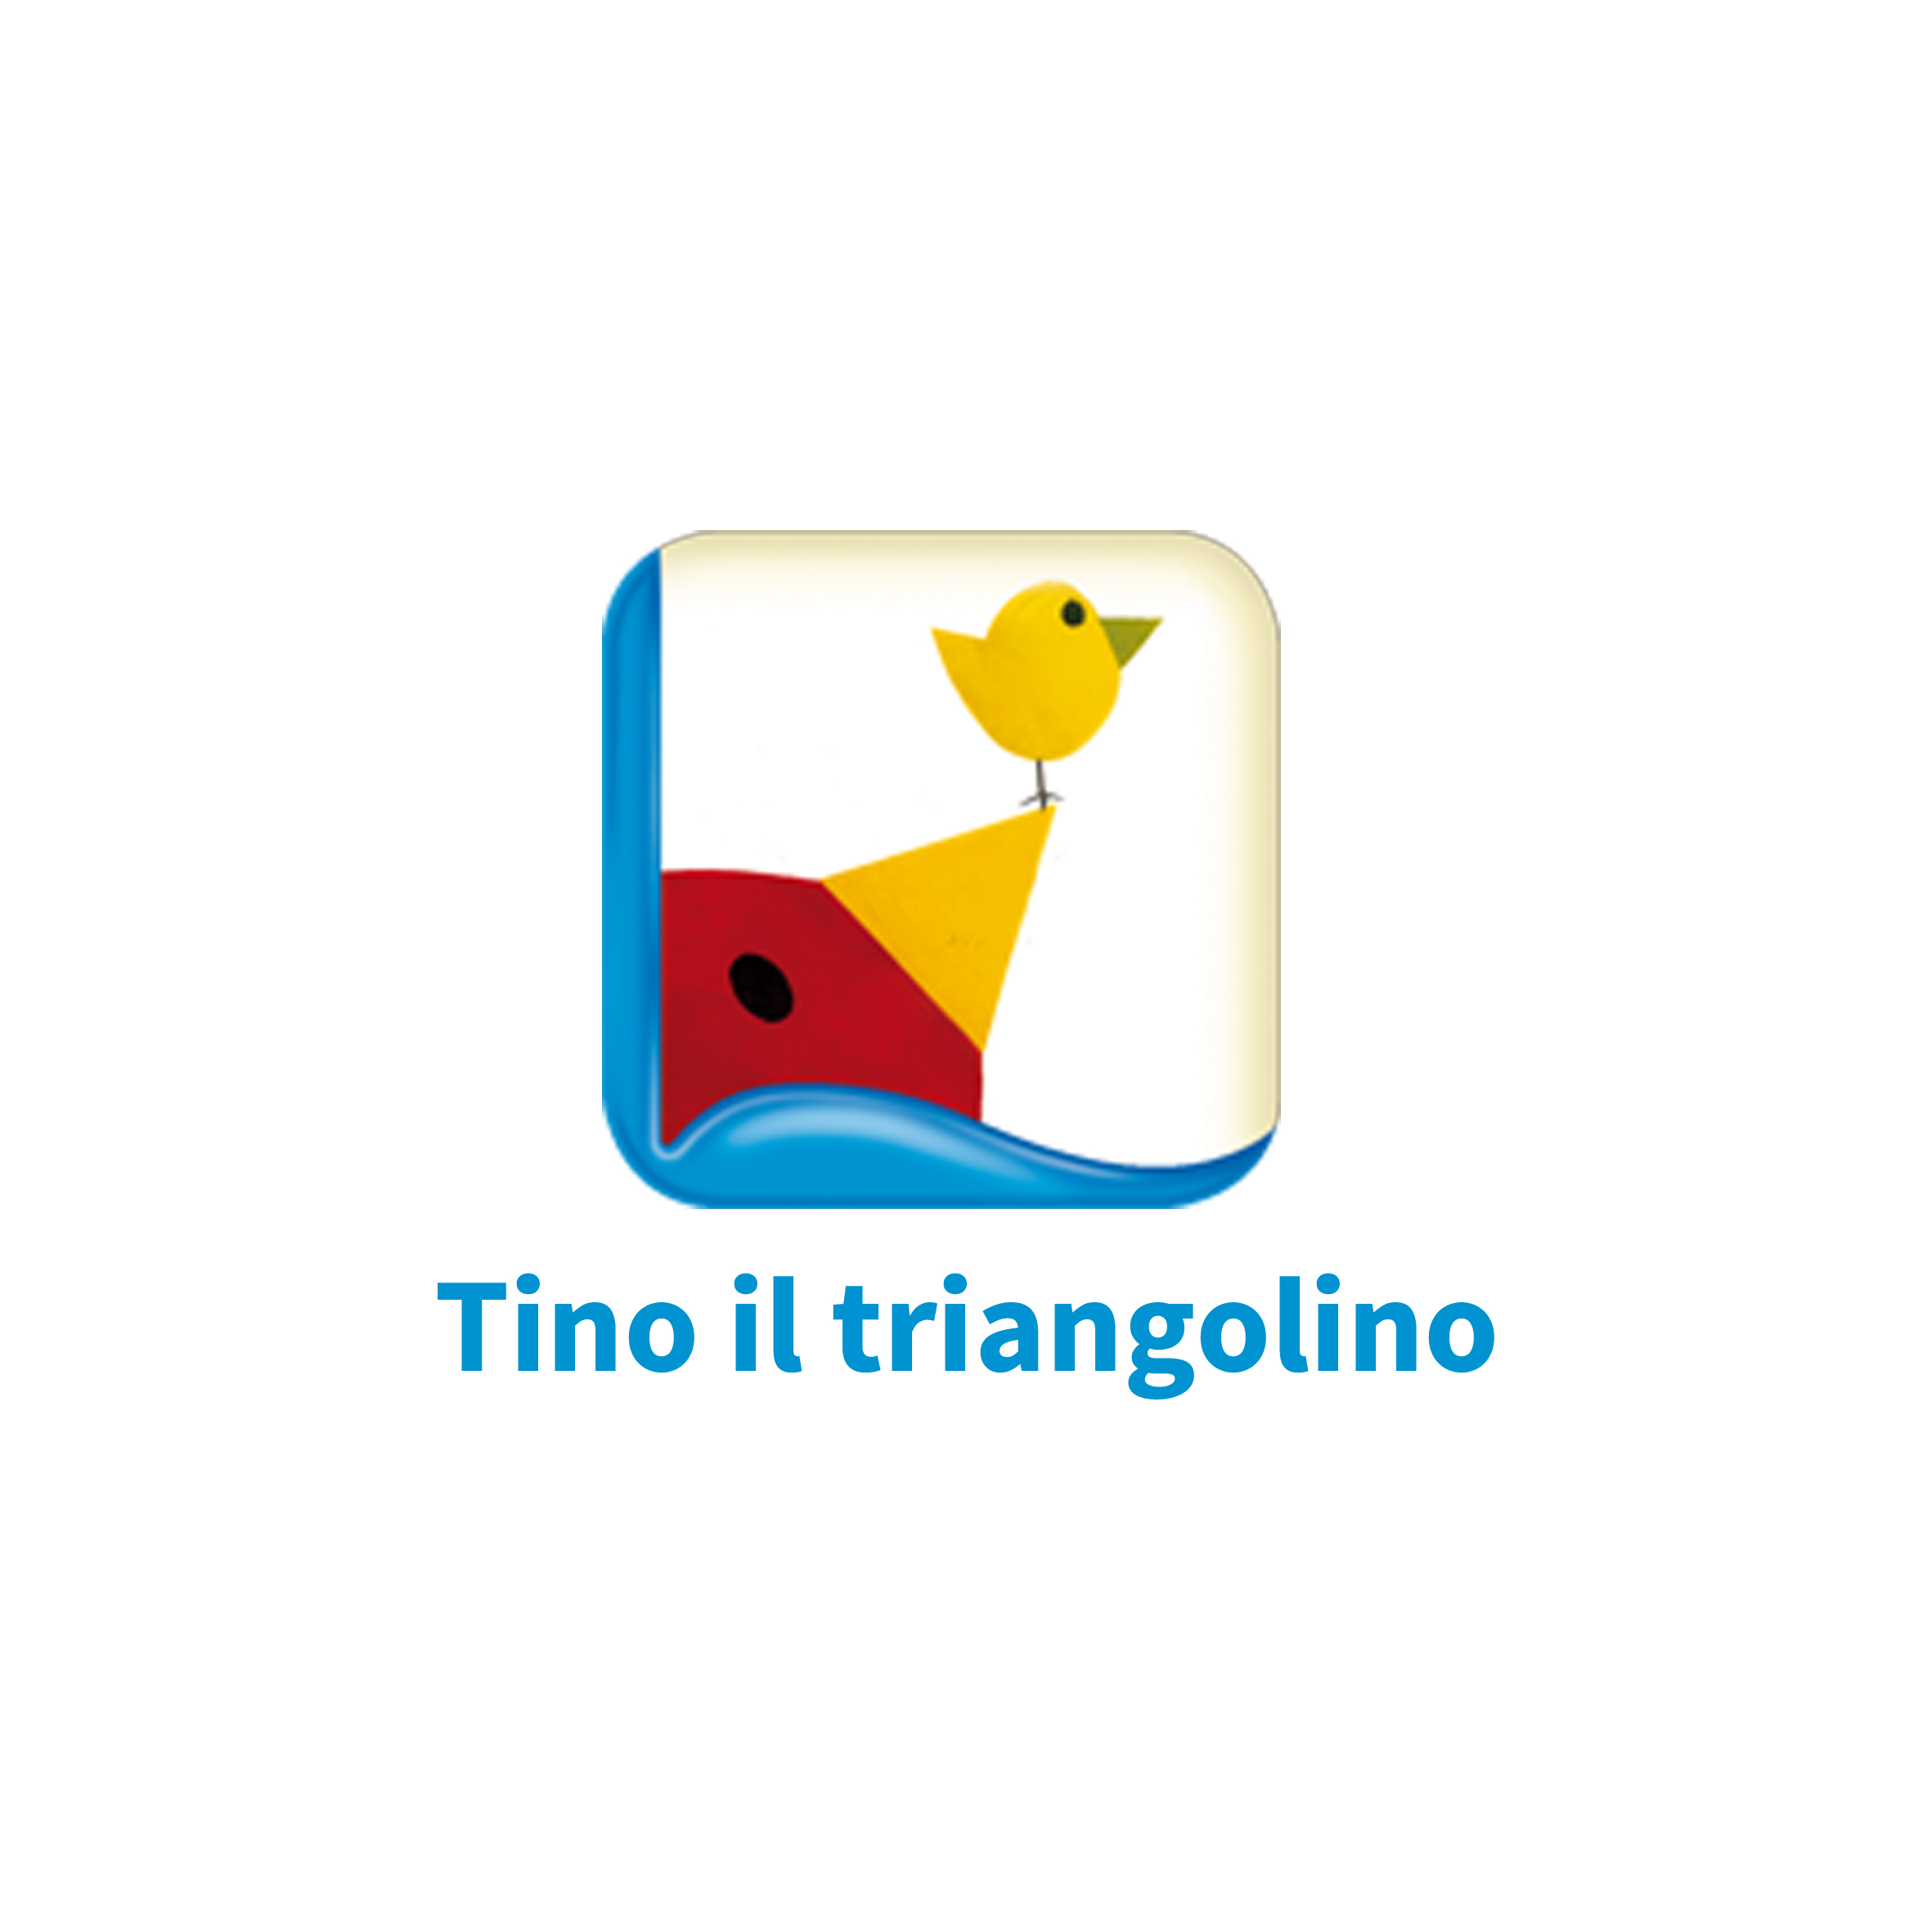 Tino_il_triangolino_news_Larixpress